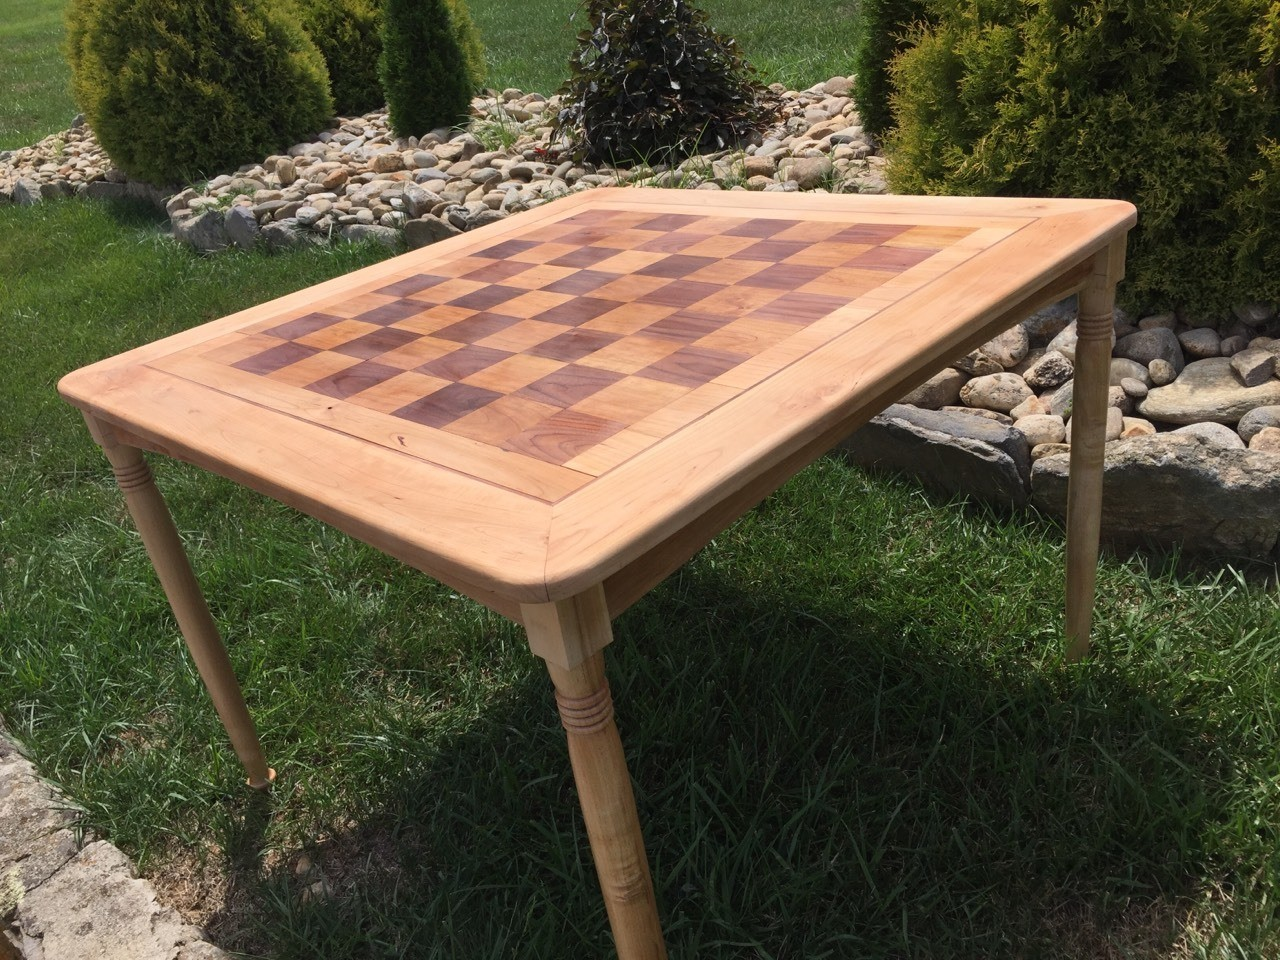 Get your game on! Chess or Checkers anyone?